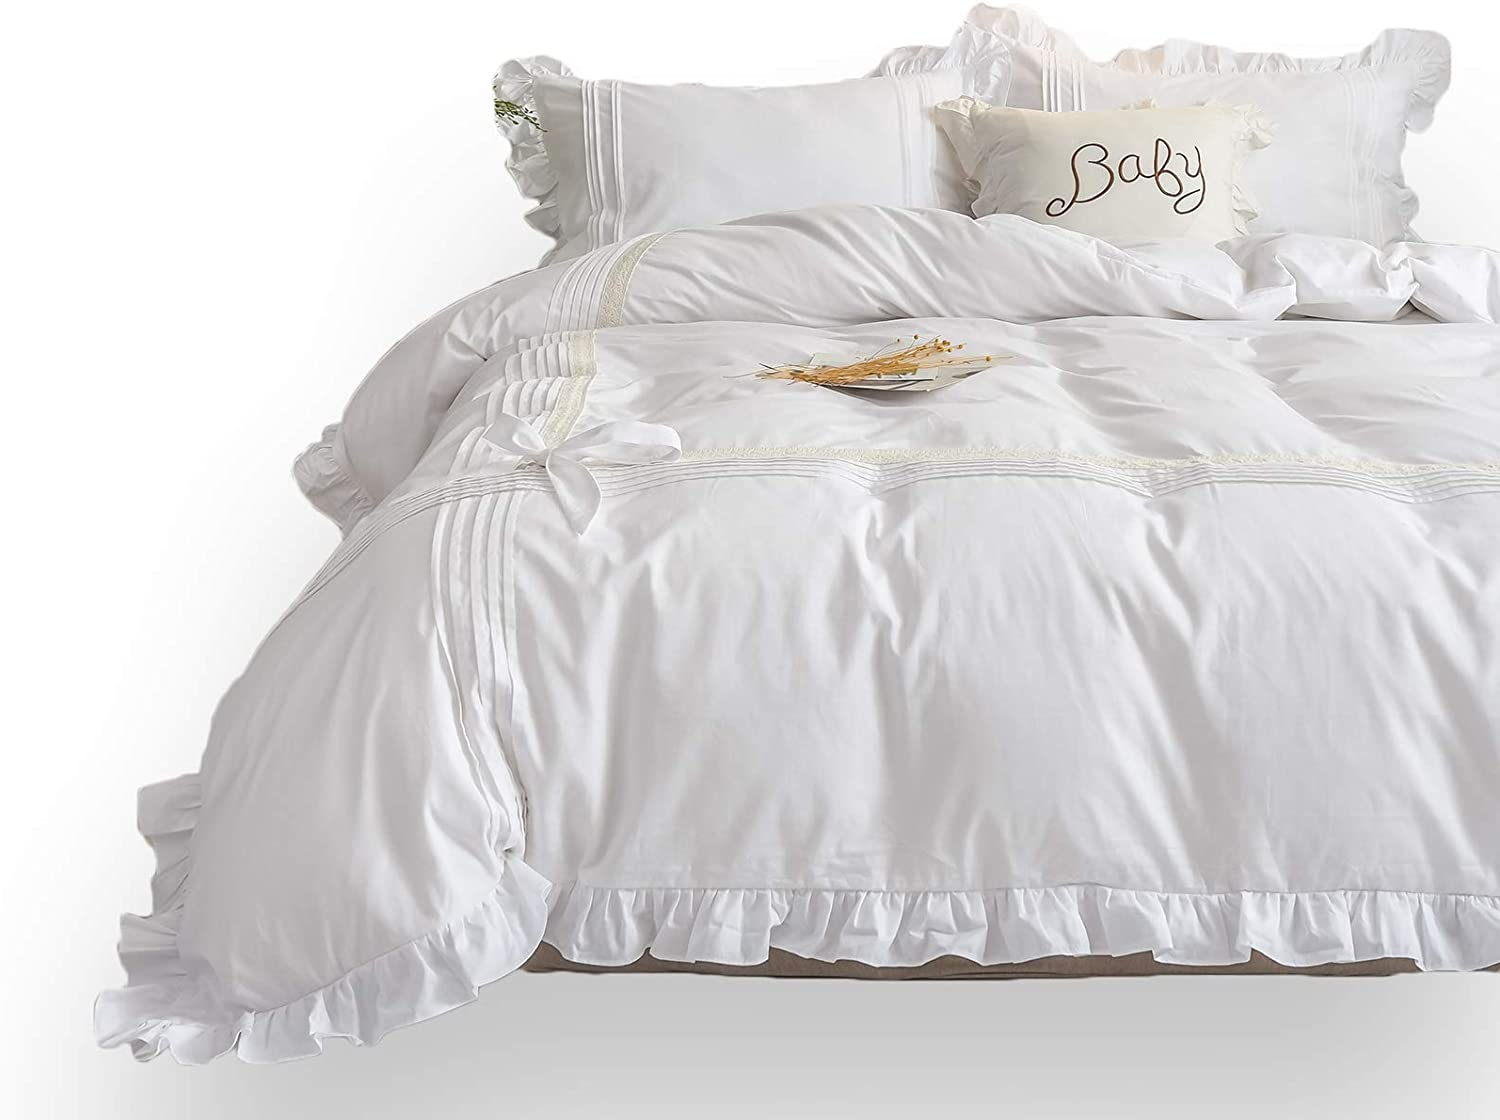 FADFAY King Size White Bedding Comforter Cover Set Shabby Ruffle Farmhouse Duvet Cover Set- Premium 100% Cotton Hypoallergenic 3 Piece - No Comforter- New in 2020- White/King